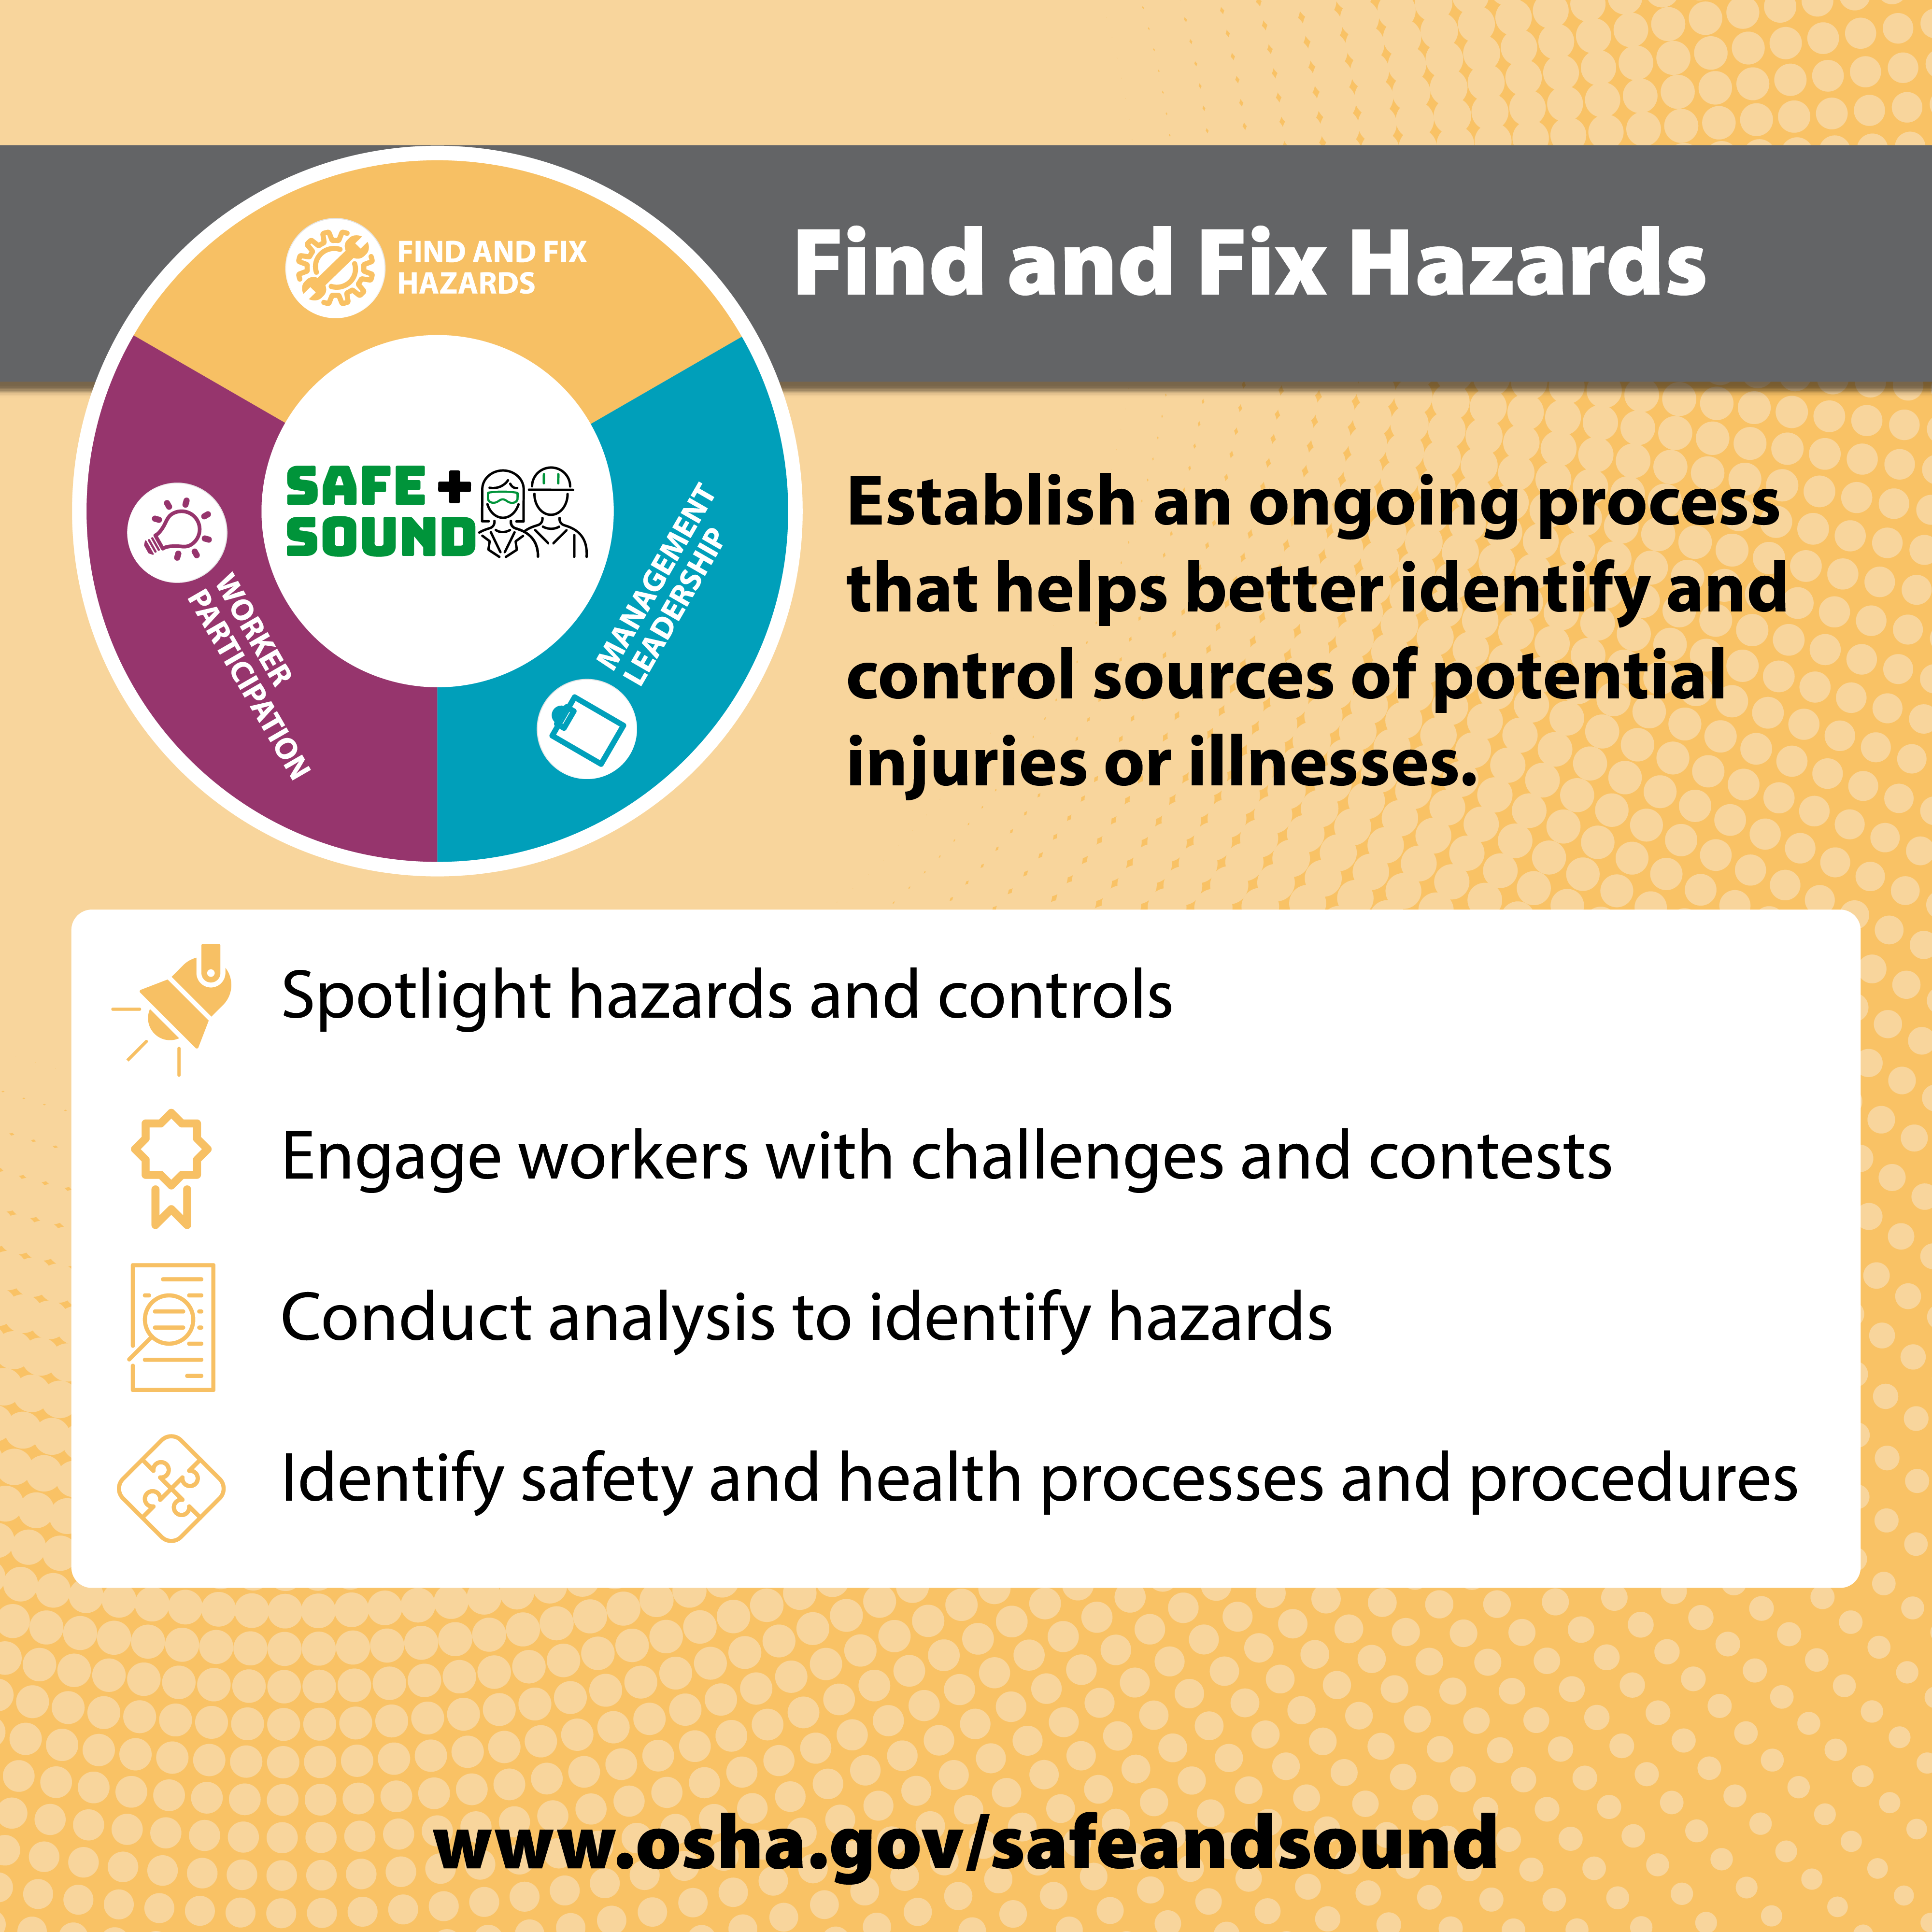 Find and Fix Hazards - Establish an ongoing process that helps better identify and control sources of potential injuries or illnesses.